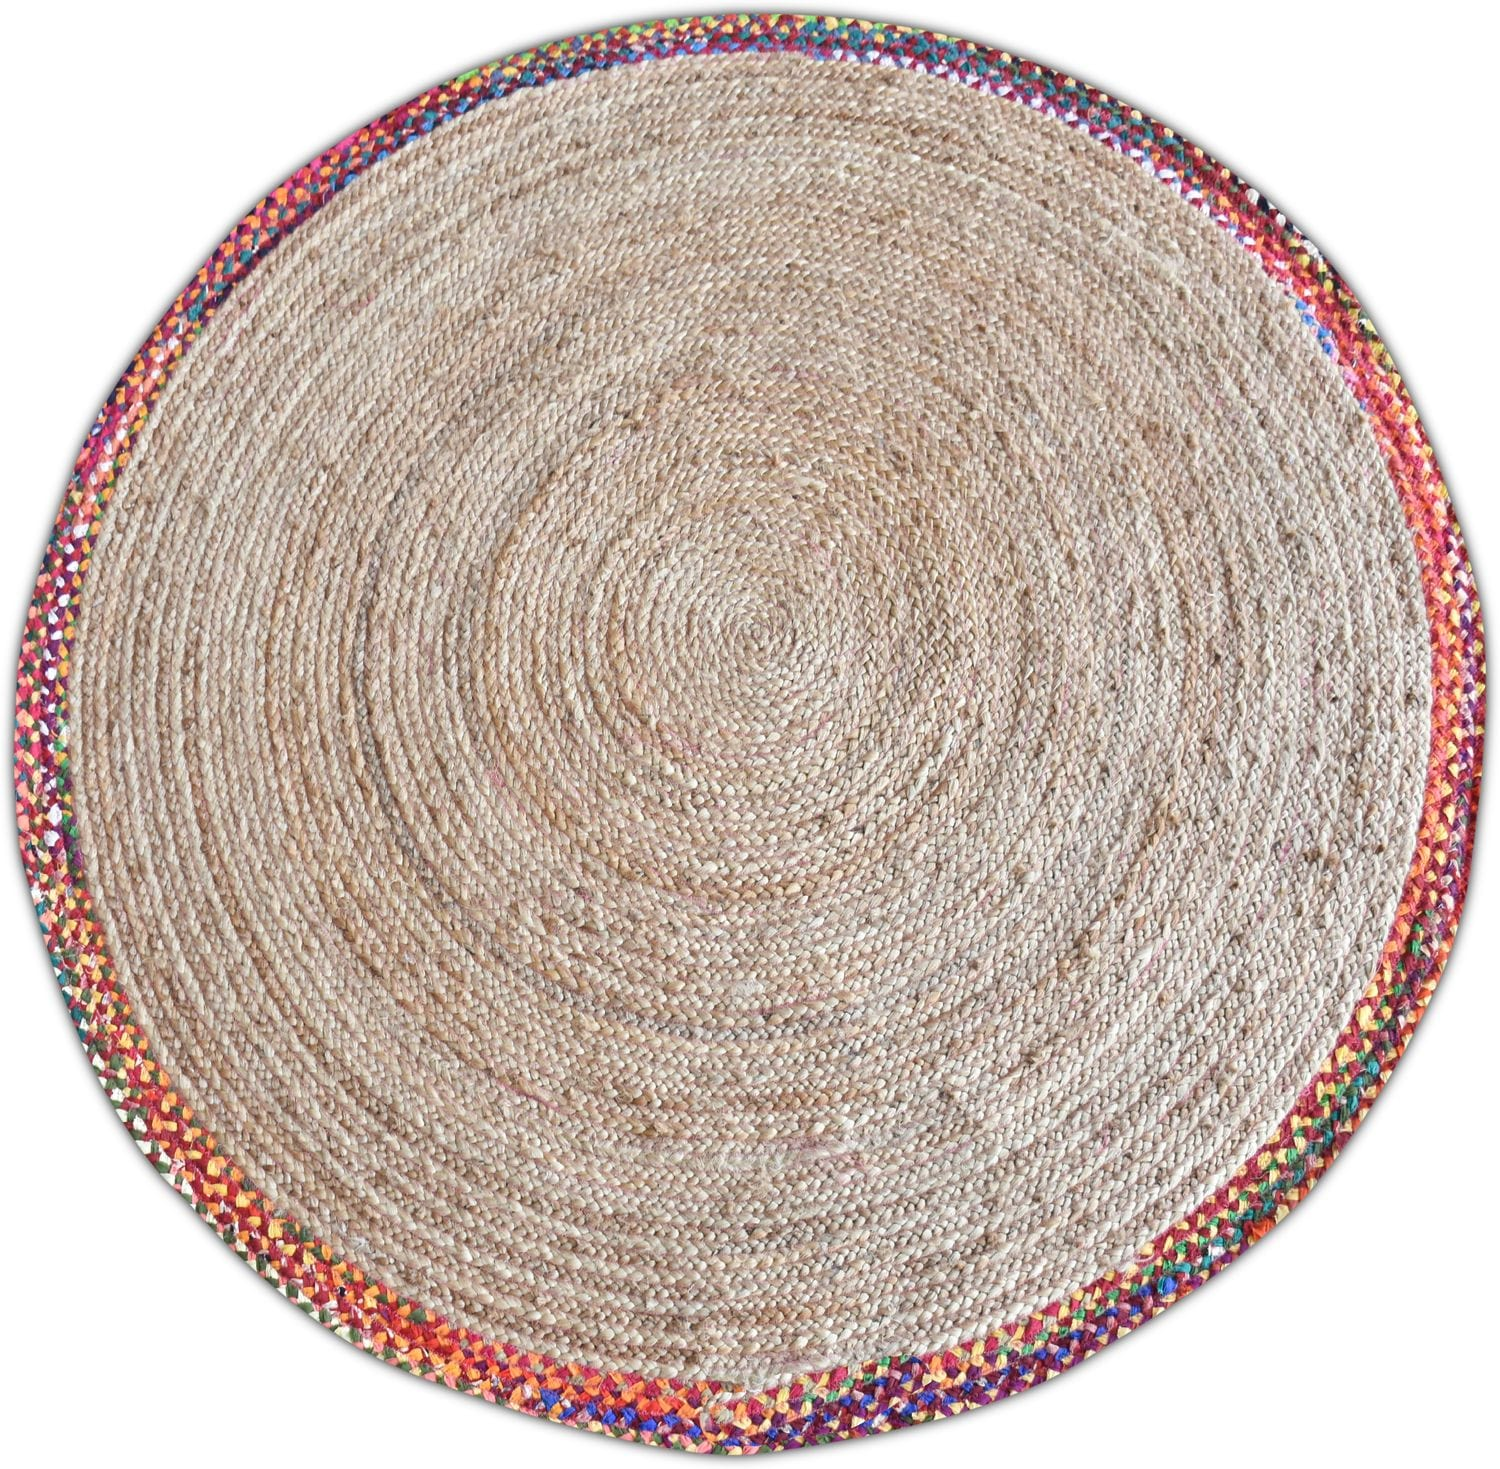 Rugs - Afono Round Area Rug - Multi